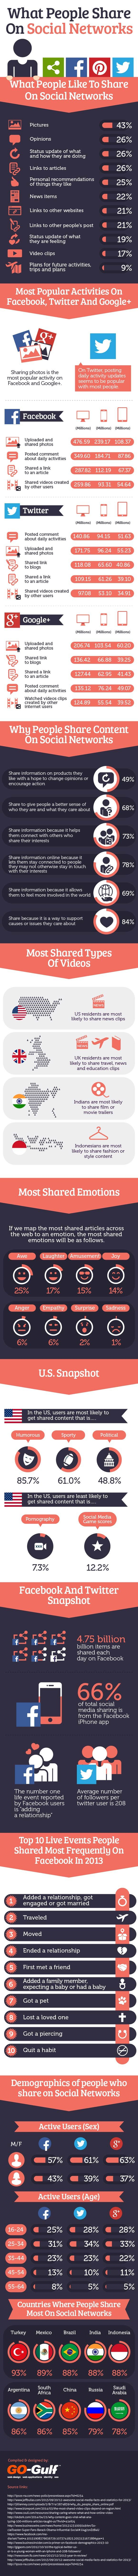 What people share on social networks: pic`s (43%), opinions & status updates & links to articles (jeweils 26%)